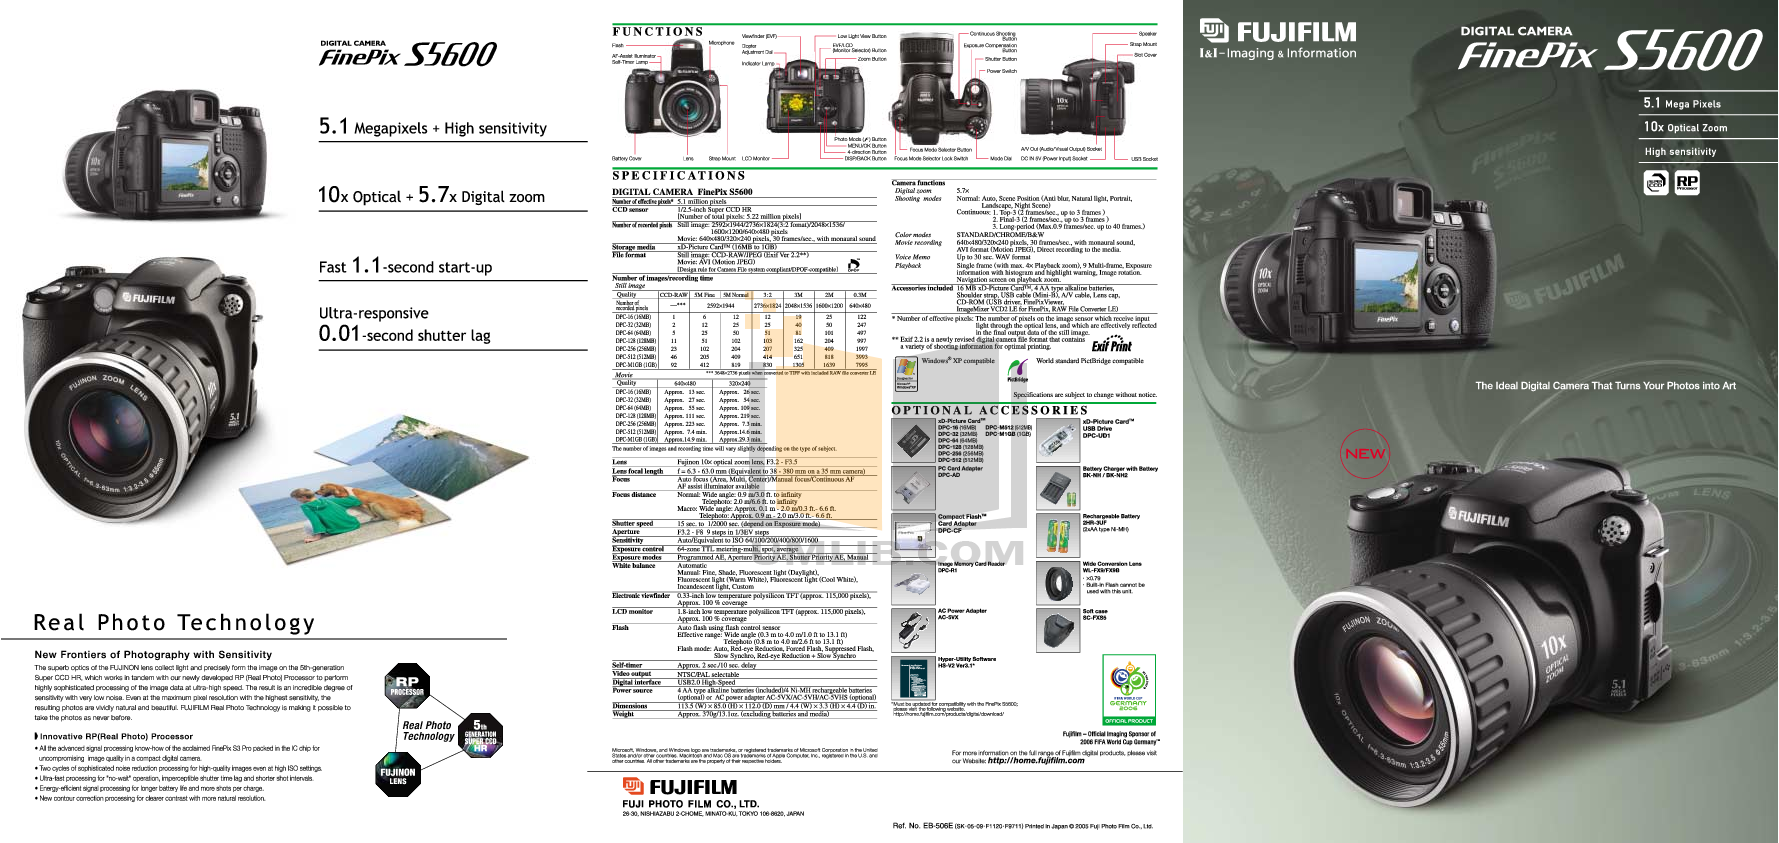 pdf for FujiFilm Digital Camera Finepix S5600 manual